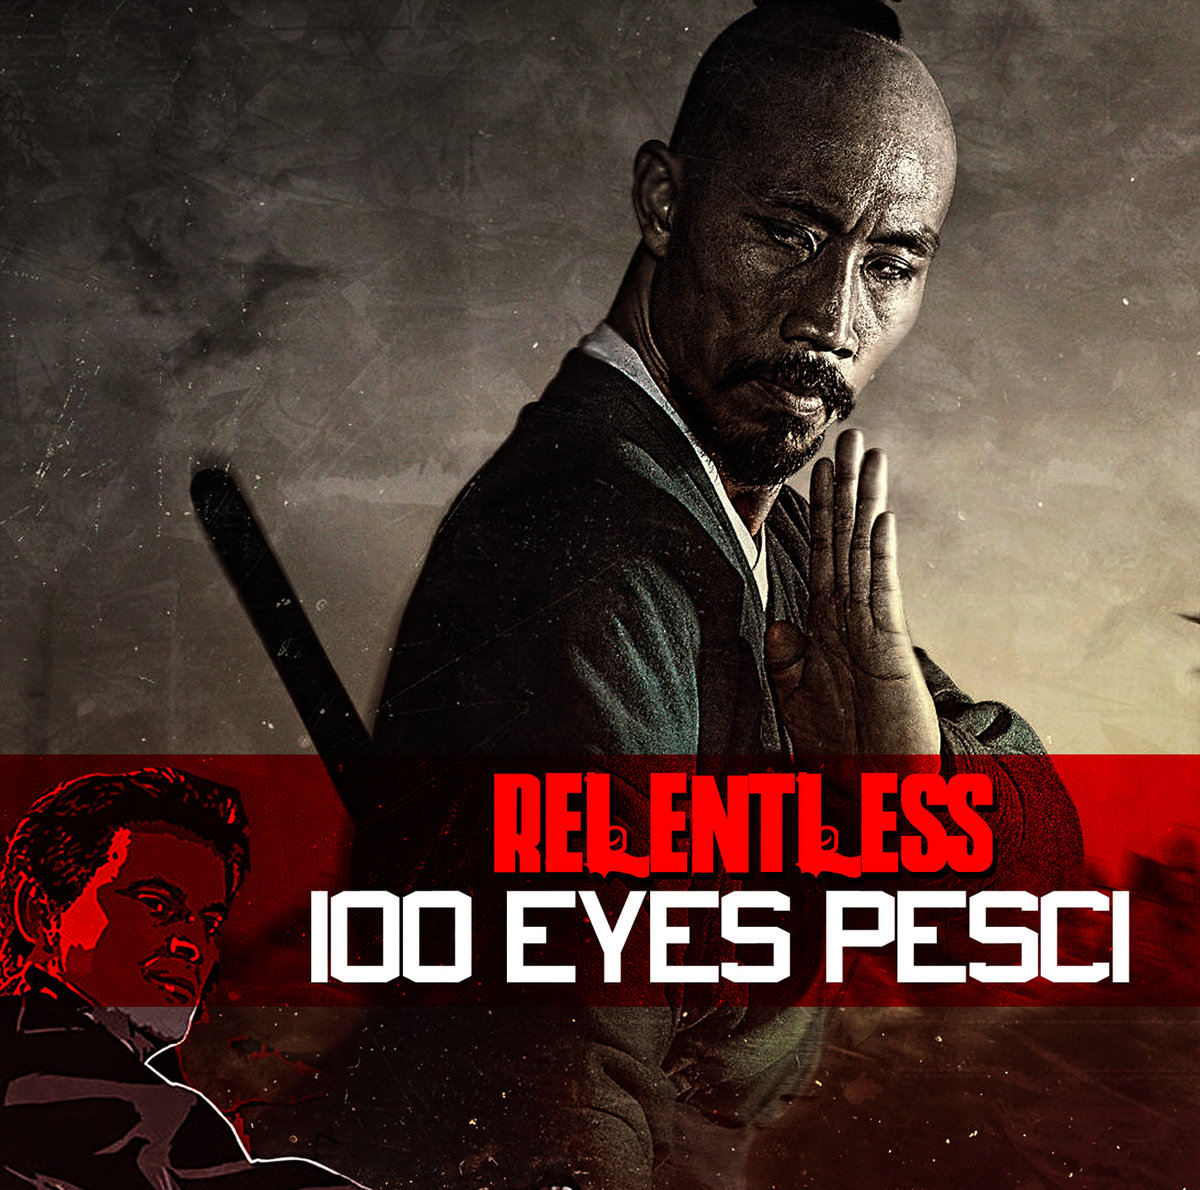 Relentless_presenta_100_eyes_pesci_by_relentless_the_tangible